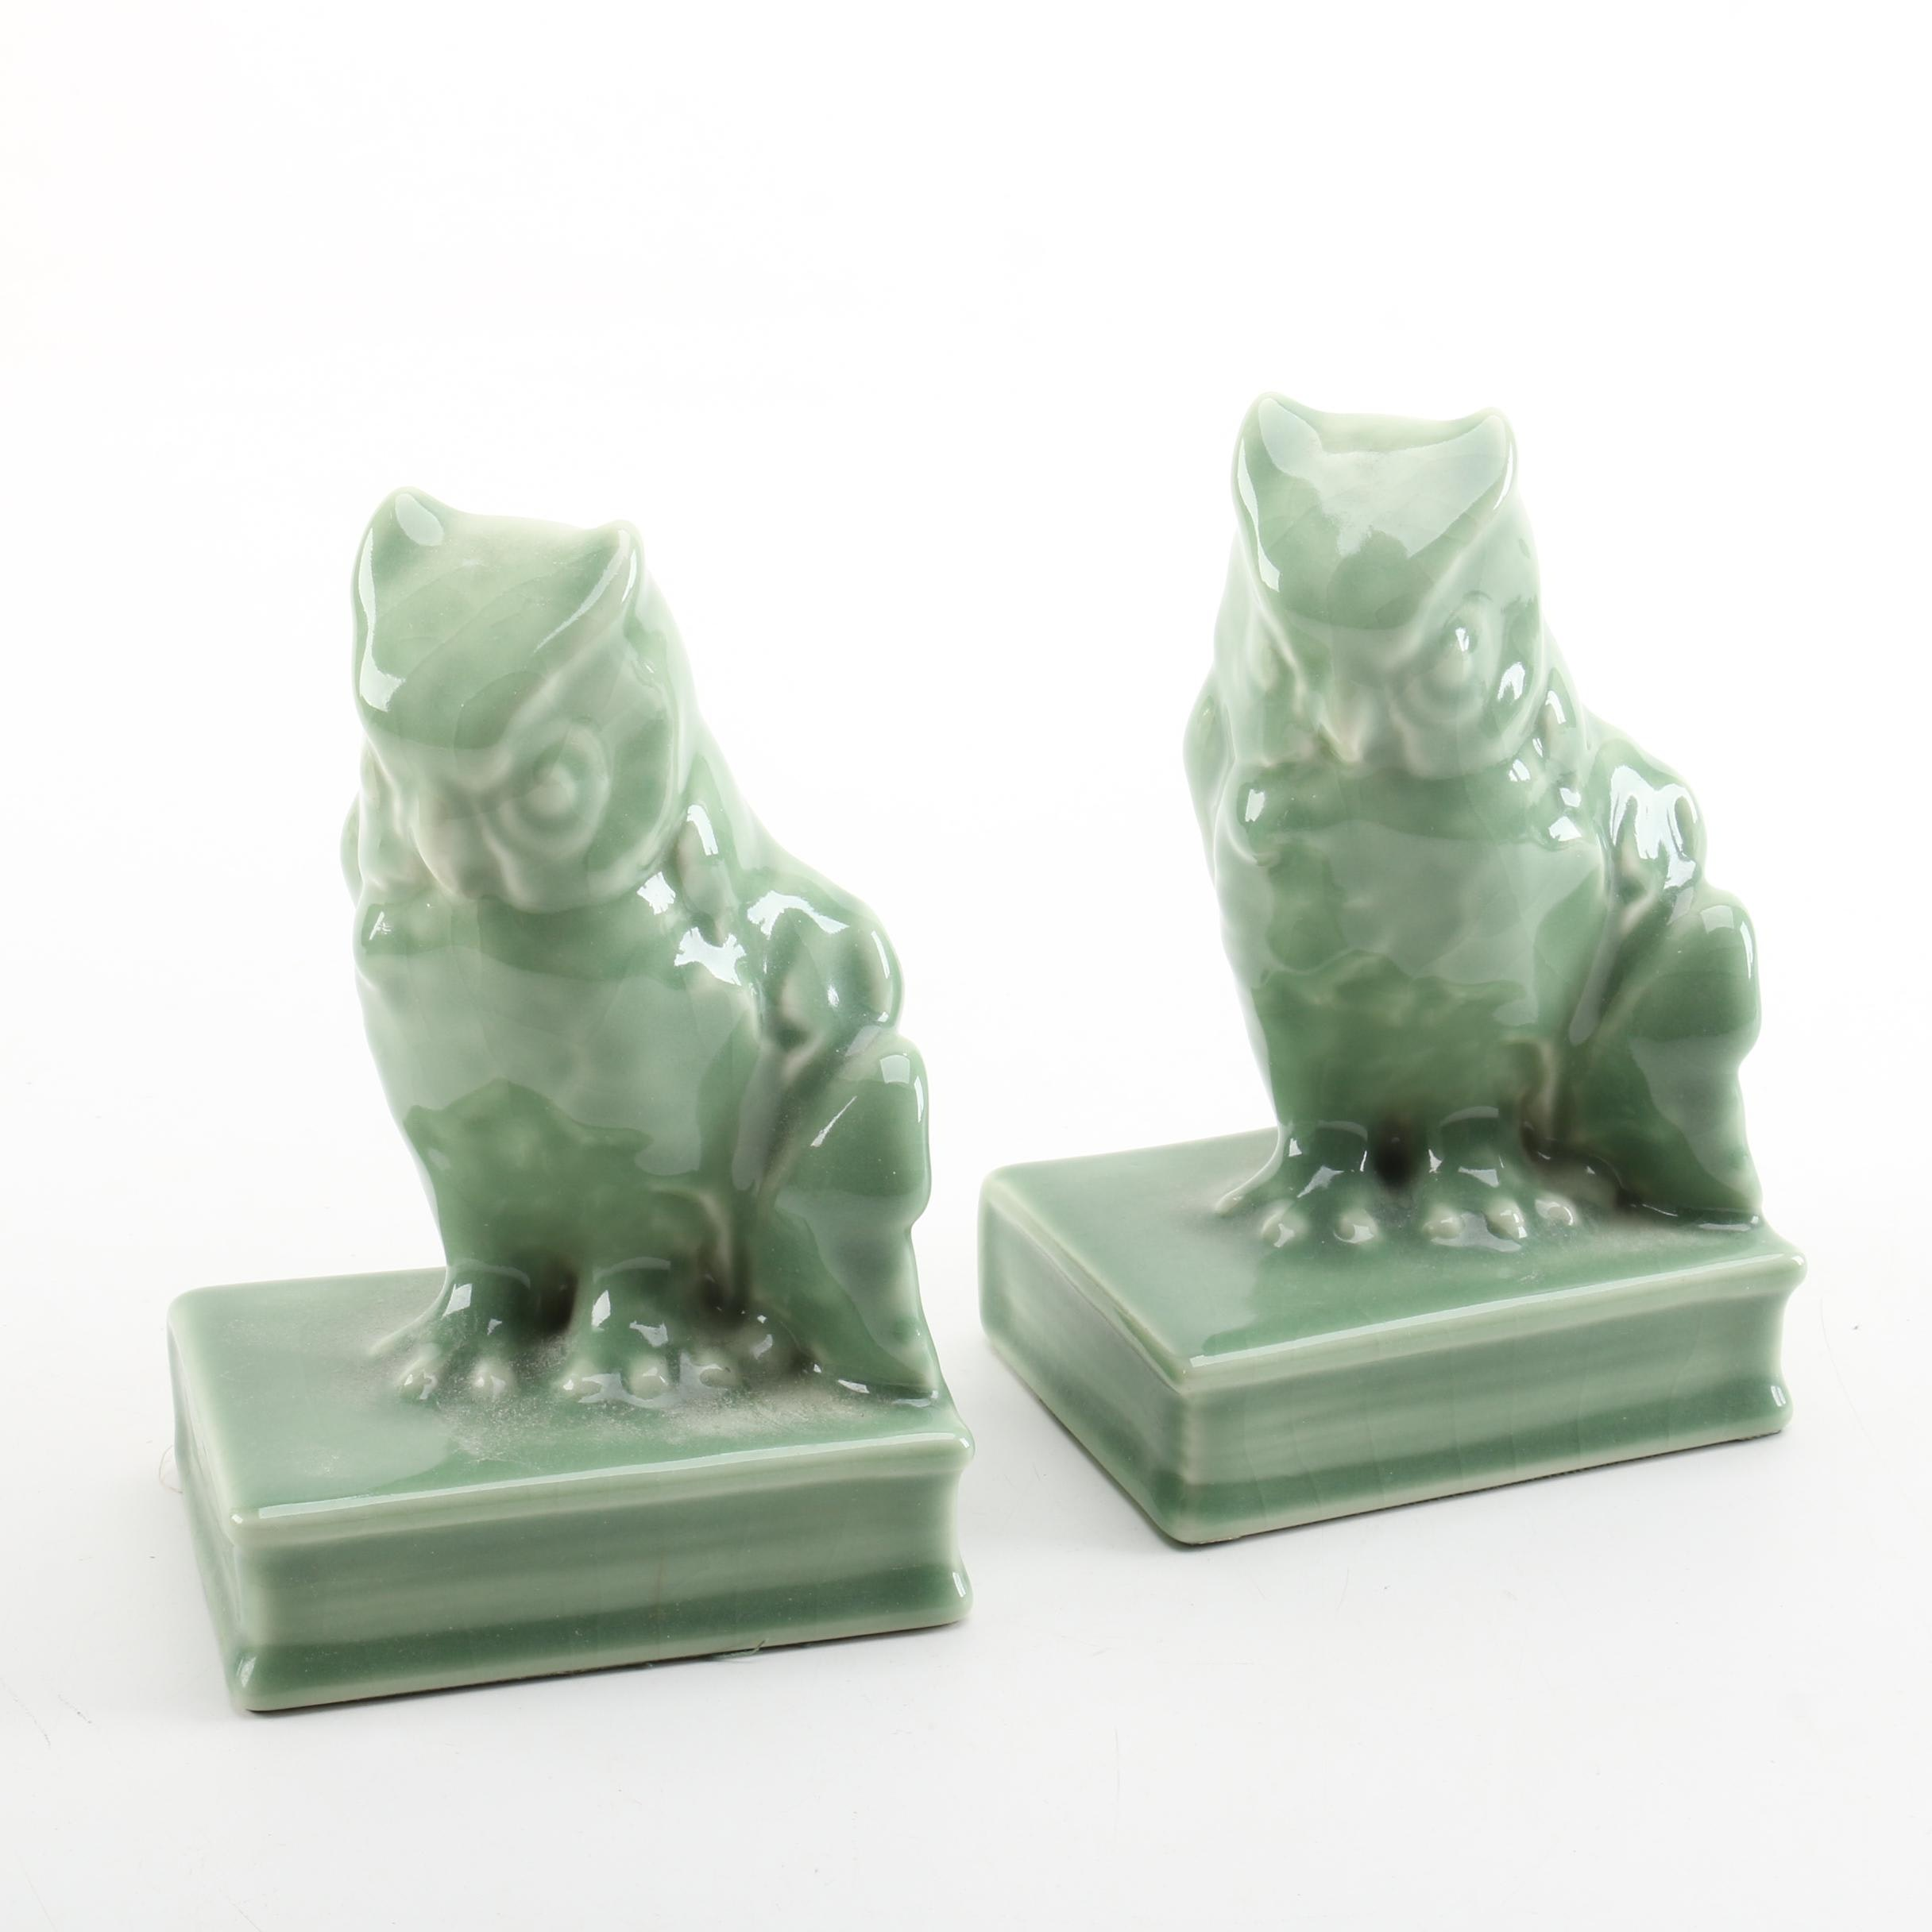 1954 Rookwood Pottery Owl Bookends